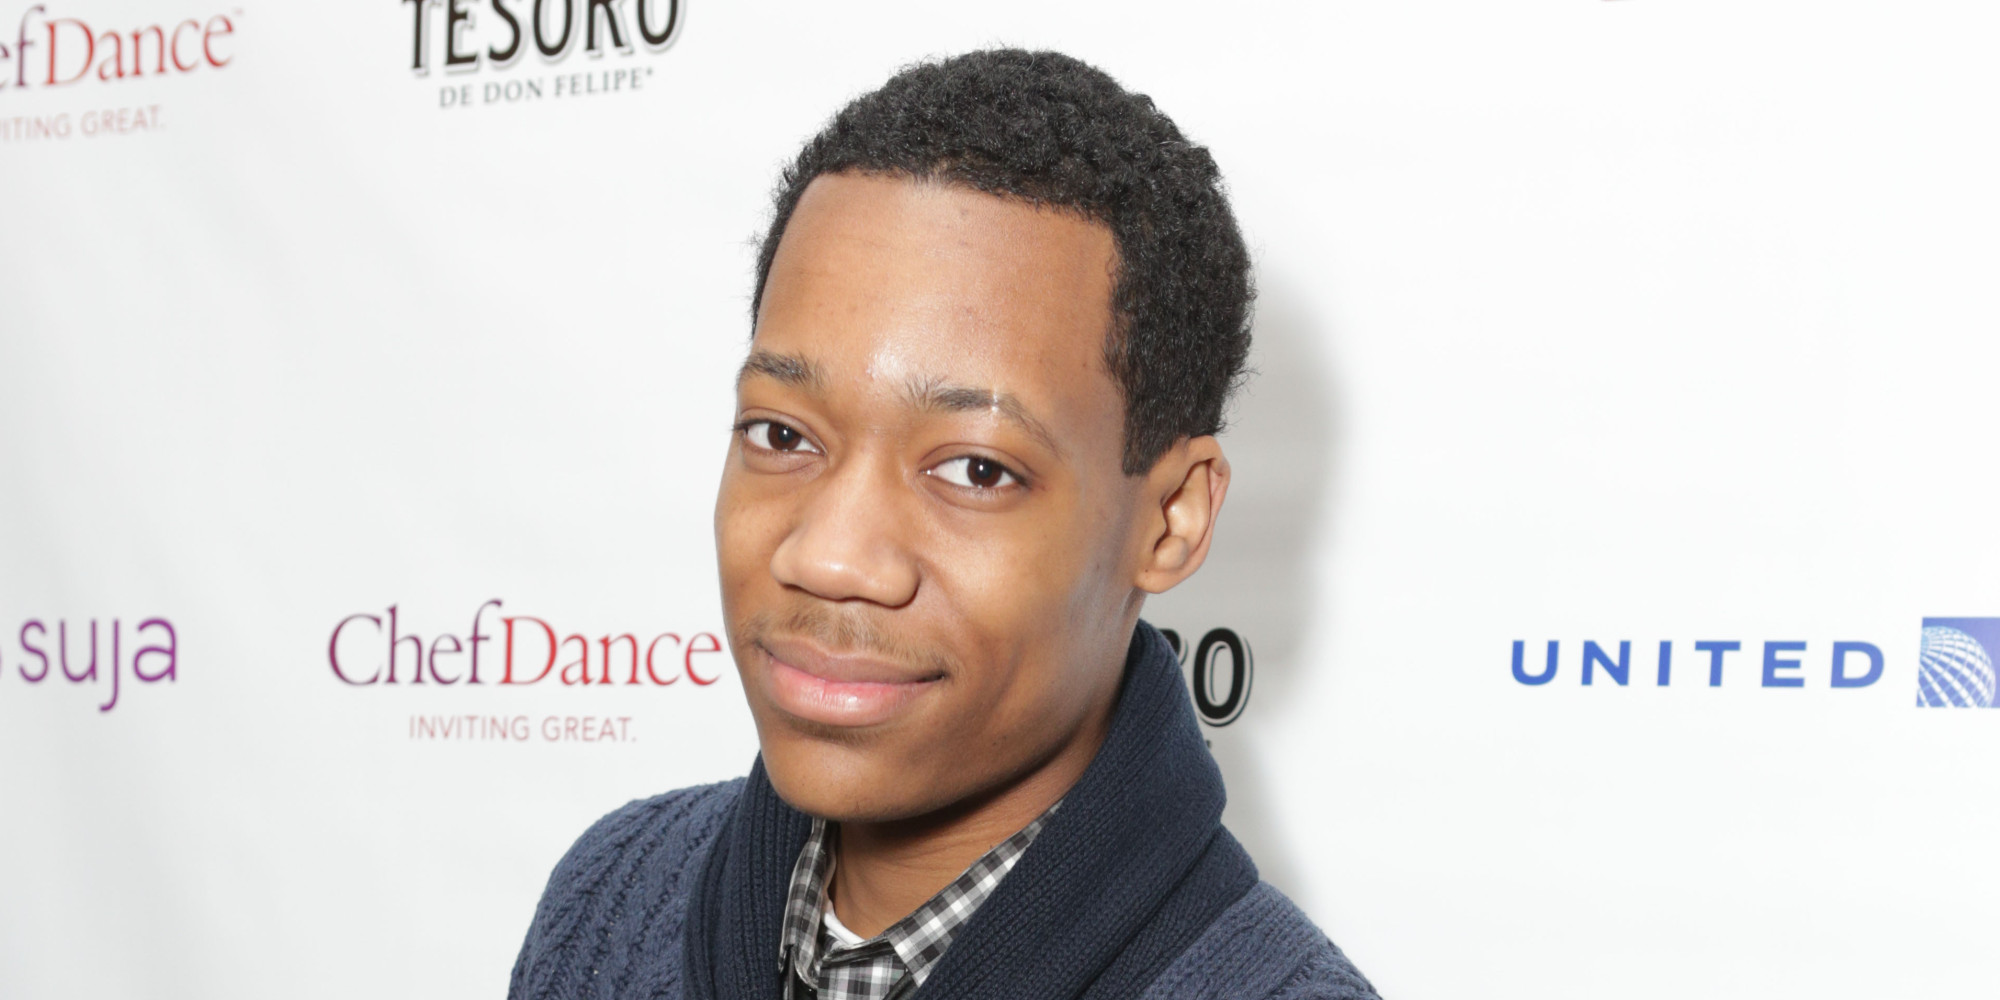 tyler james williams wikipédiatyler james williams anastasia baranova, tyler james williams guardian angel, tyler james williams 2015, tyler james williams walking dead, tyler james williams gif, tyler james williams taille, tyler james williams imdb, tyler james williams namorada, tyler james williams instagram, tyler james williams 2016, tyler james williams brothers, tyler james williams wikipédia, tyler james williams atualmente, tyler james williams, tyler james williams net worth, tyler james williams don't run away, tyler james williams rapping, tyler james williams don run away lyrics, tyler james williams you belong to me lyrics, tyler james williams movies